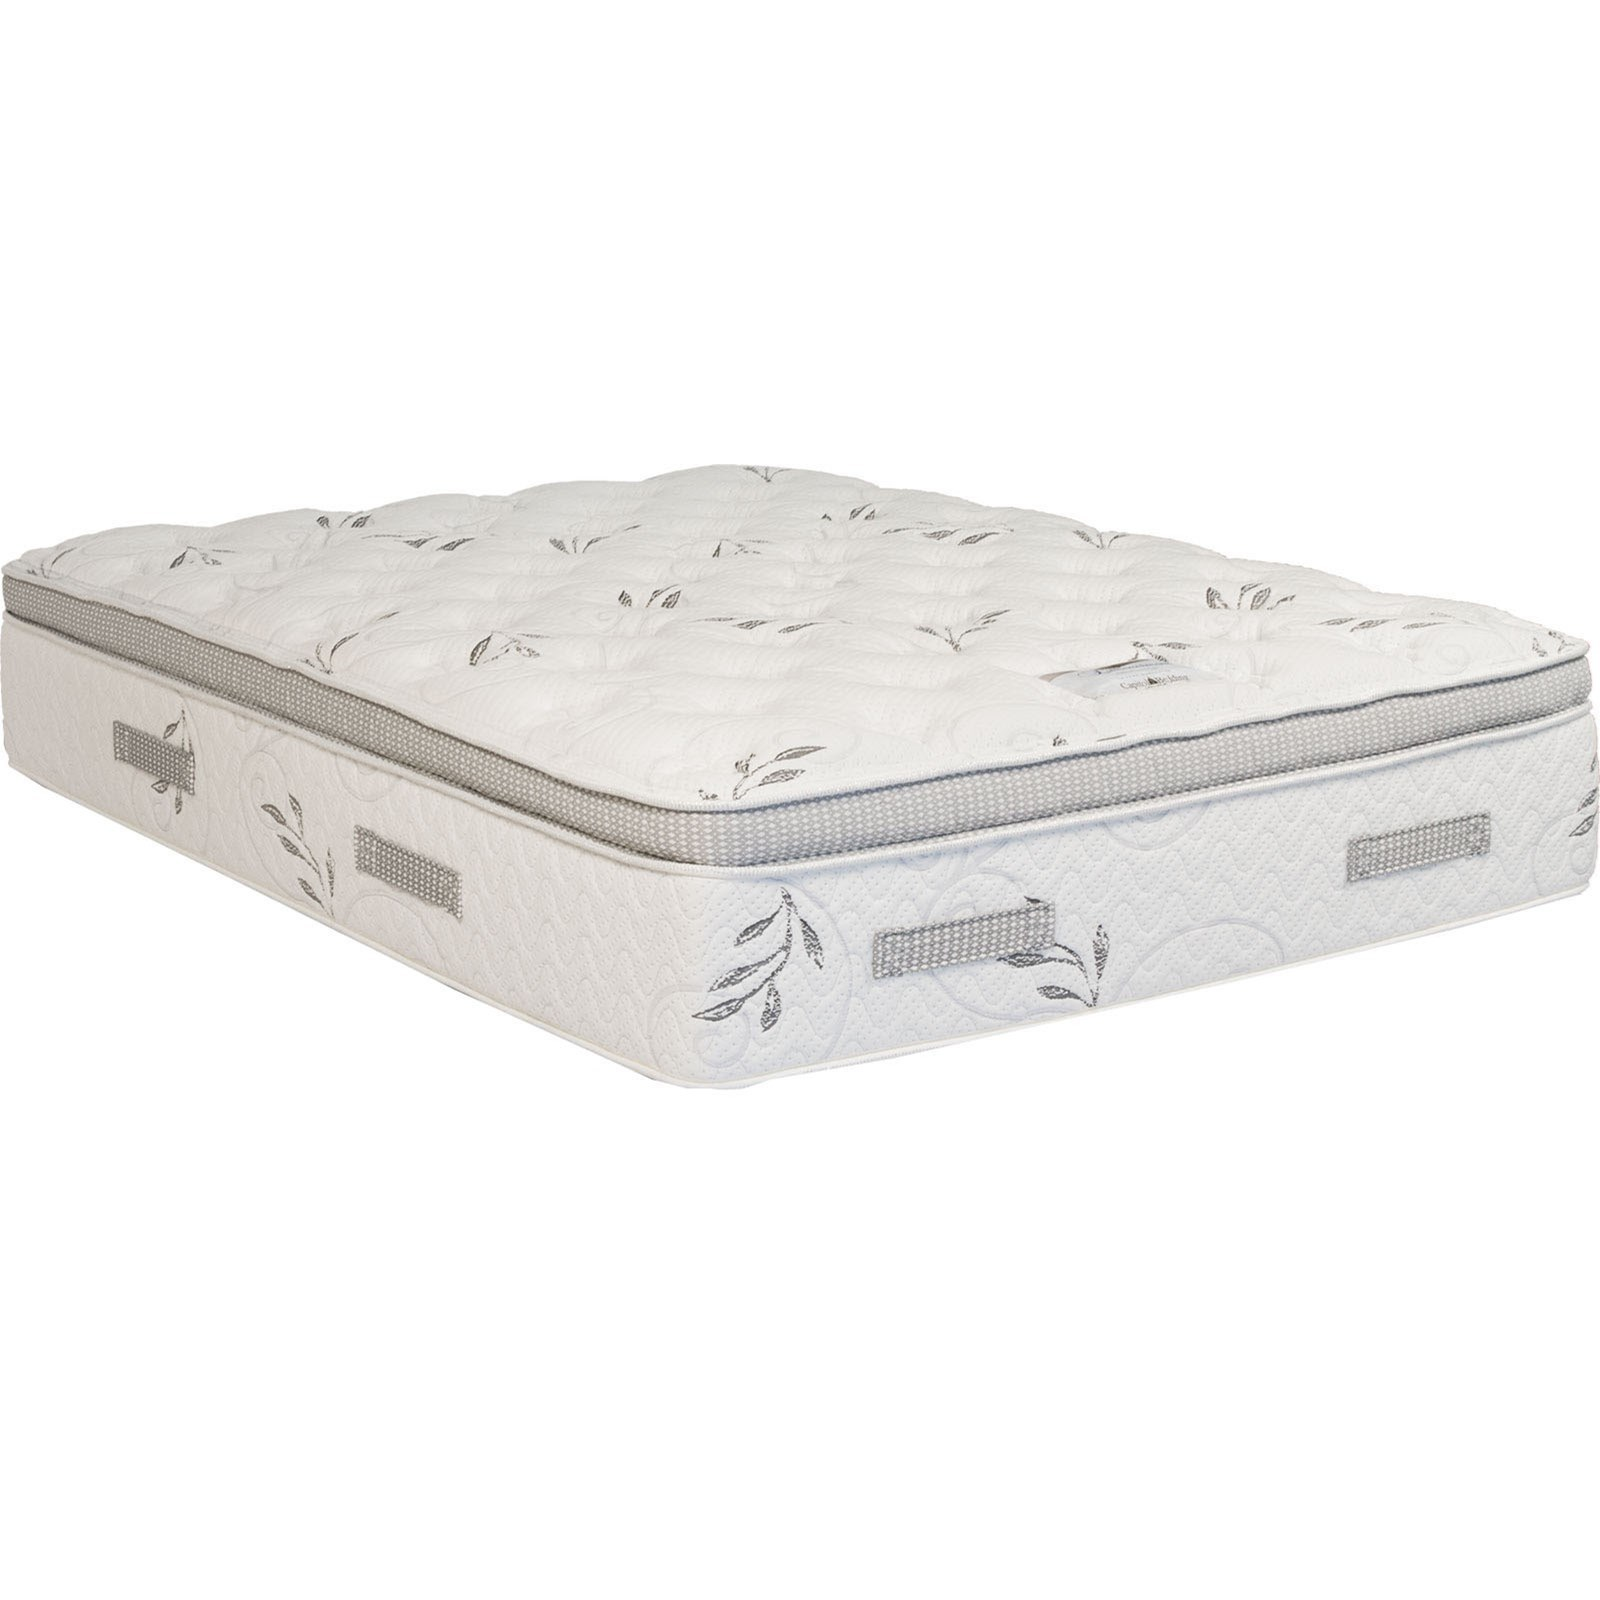 Capitol Bedding Opulence Queen Pillow Top Mattress, Adj Set - Item Number: PillowTop-Q+Essential-Q